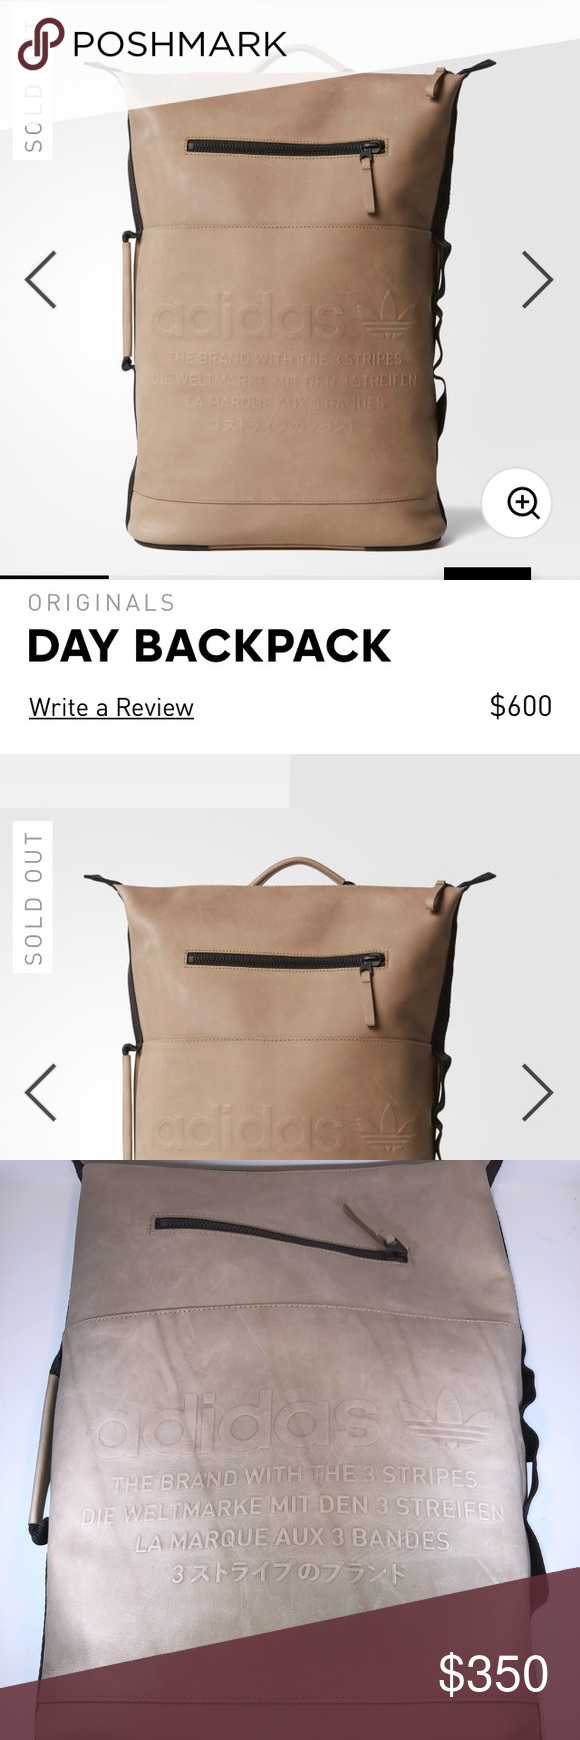 60c6e2258 Adidas Original NMD Day Cardboard Leather Backpack New With Tags. Adidas  Originals NMD Day Cardboard (Color) Backpack Premium Leather   Suede One  Size ...